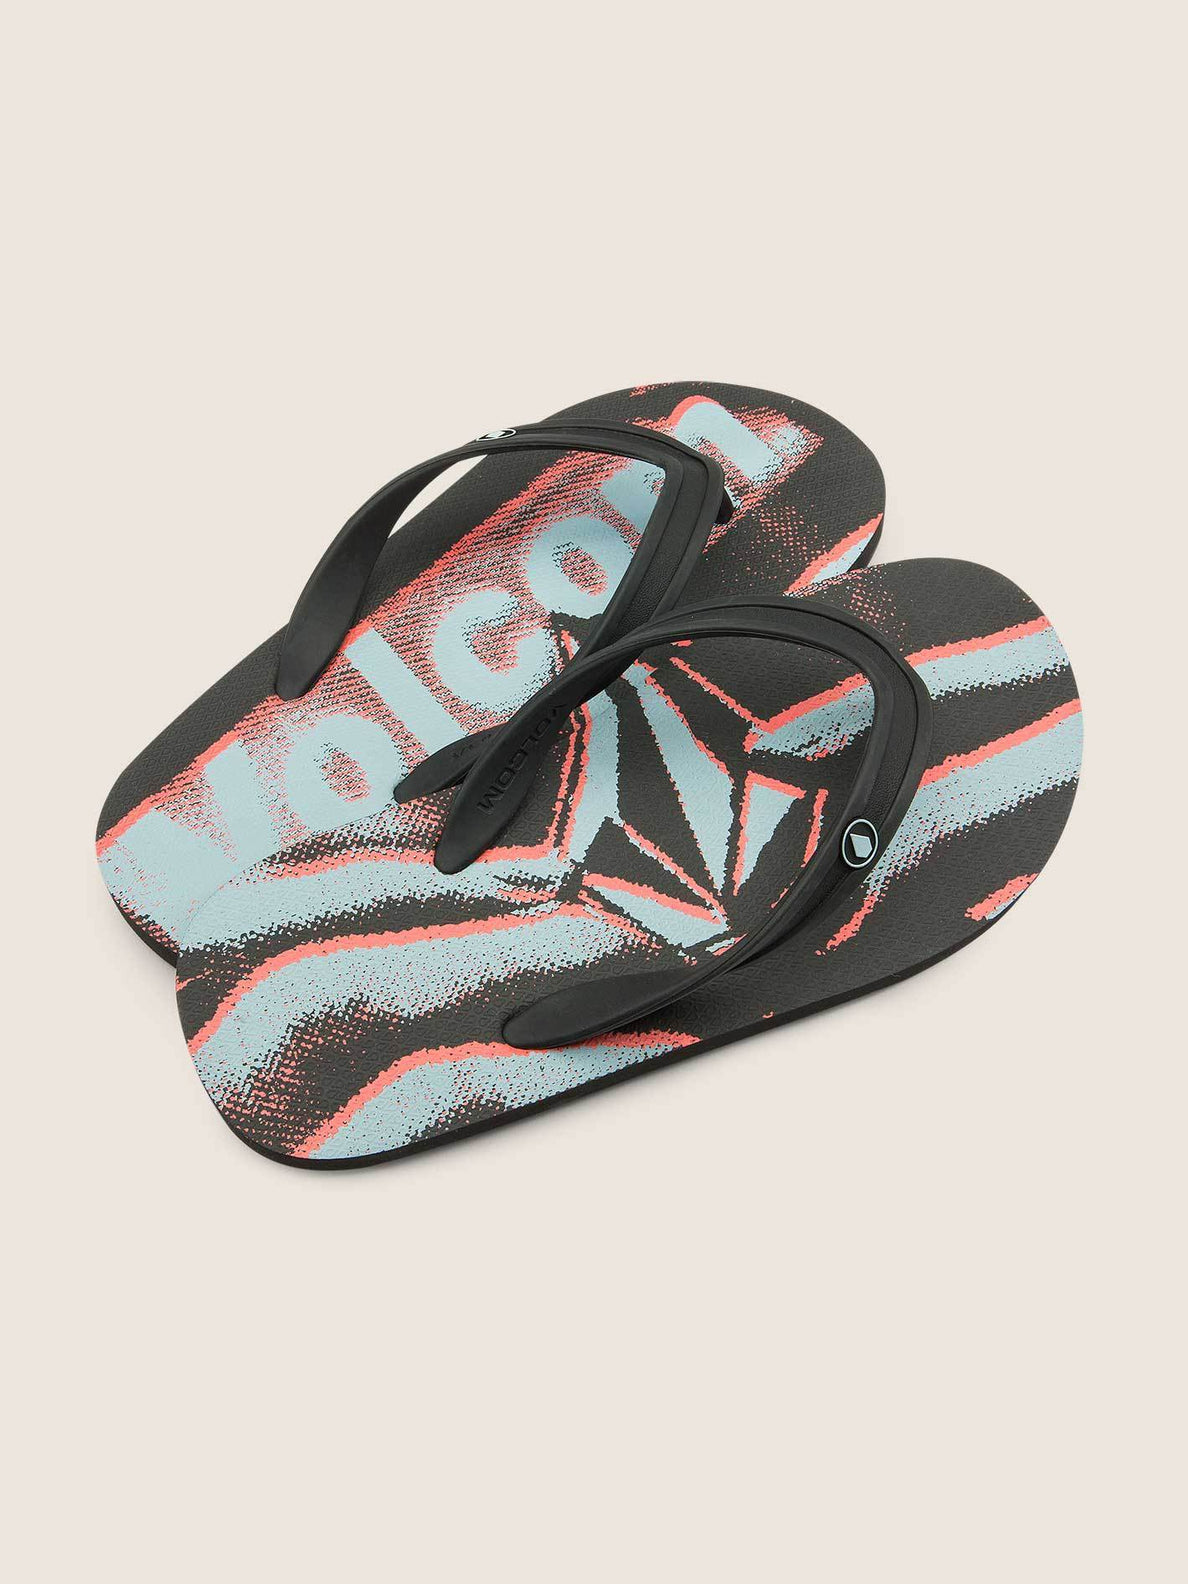 Rocker 2 Sandals Big Youth - Electric Coral (X0811800_ELC) [F]